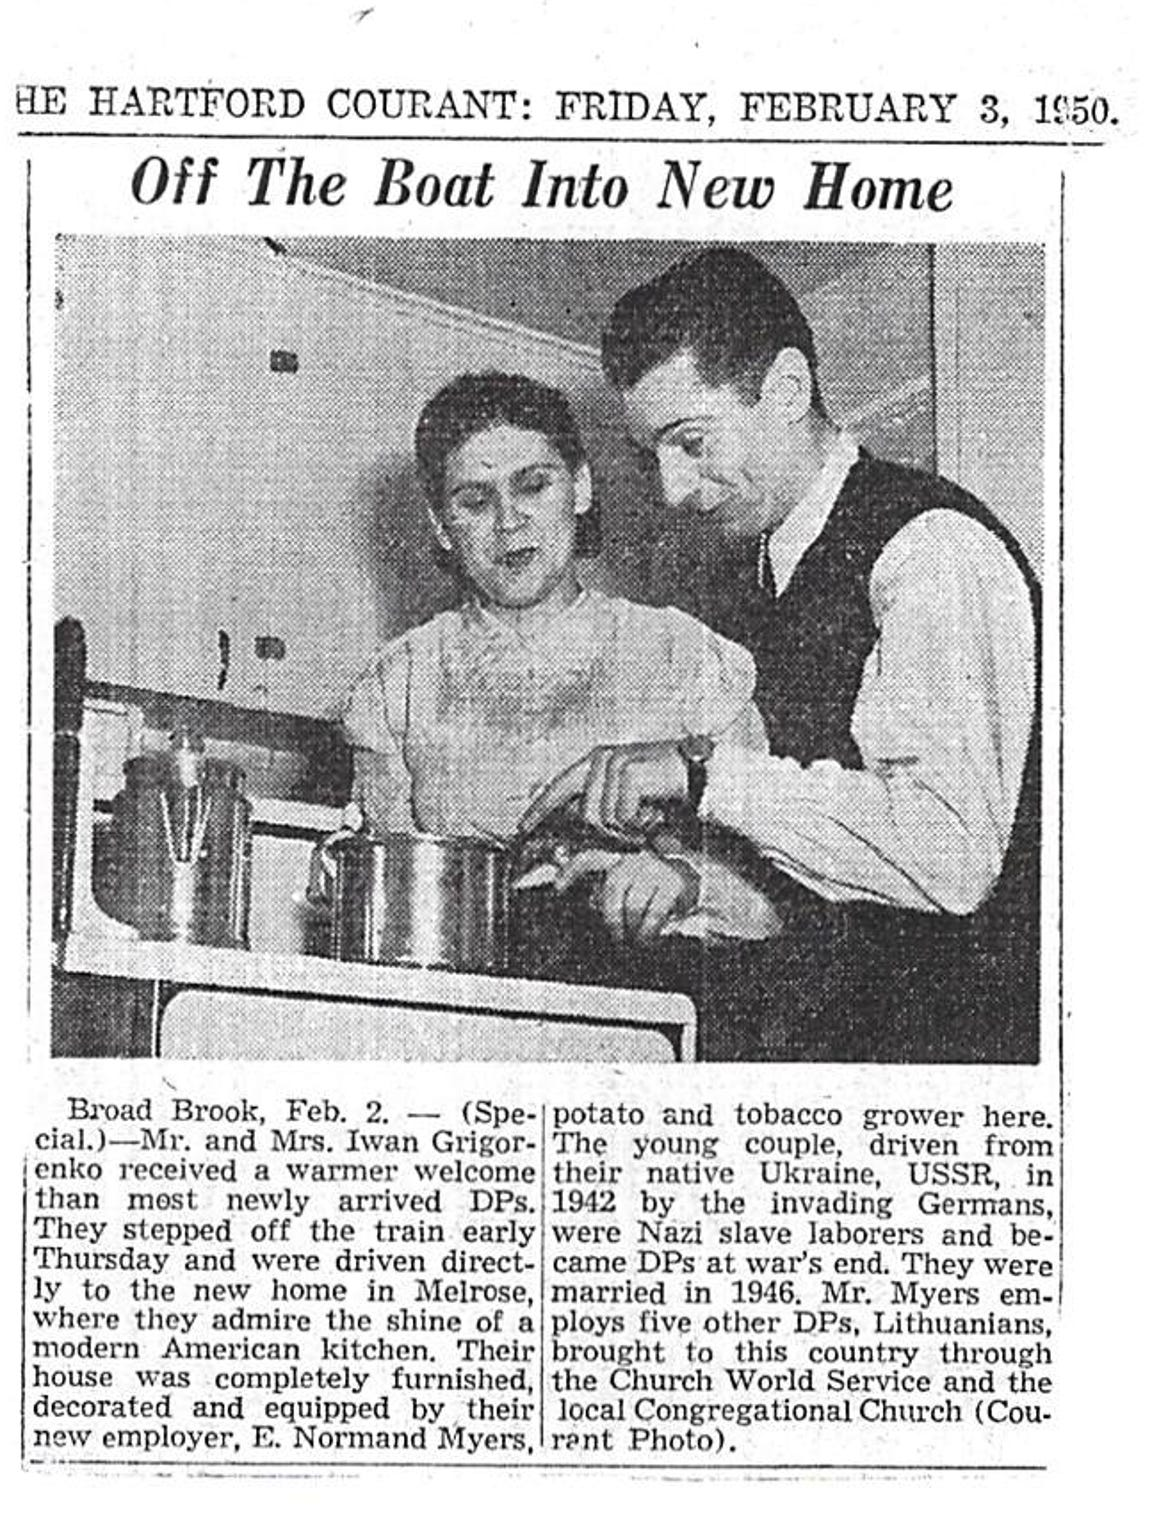 A Hartford Courant article about Nina and her husband